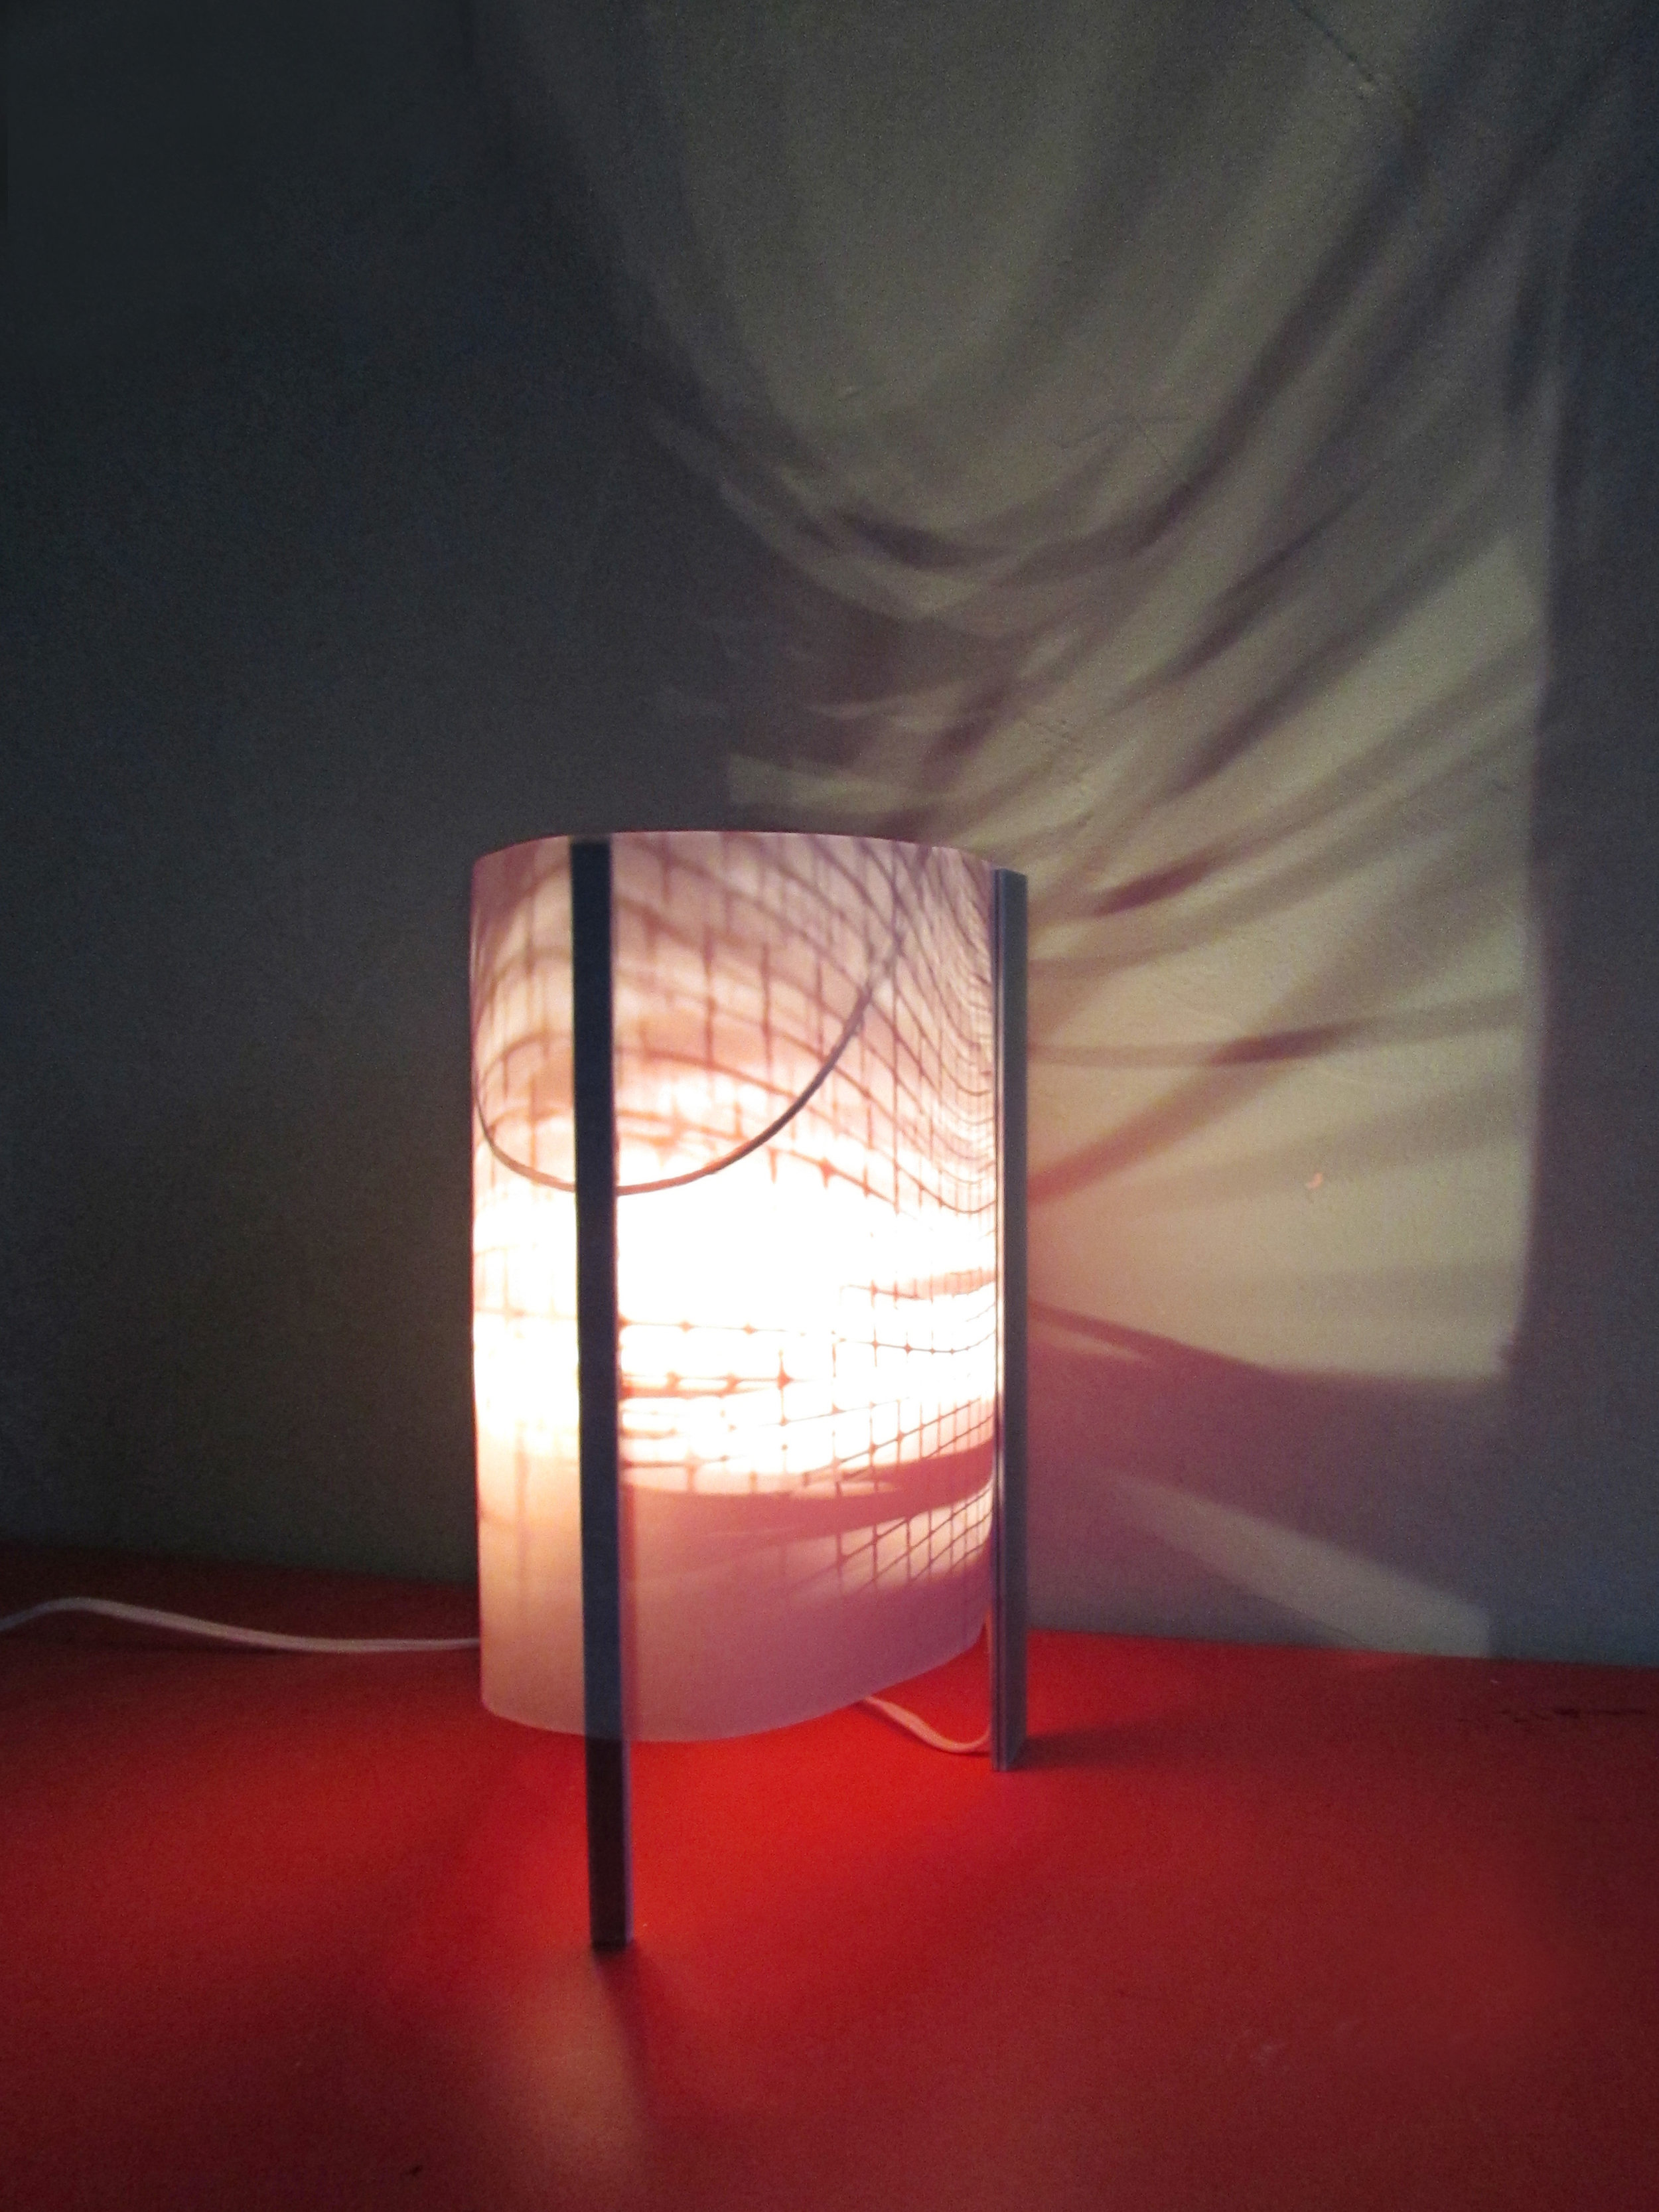 #1minuteLamp by Ximena